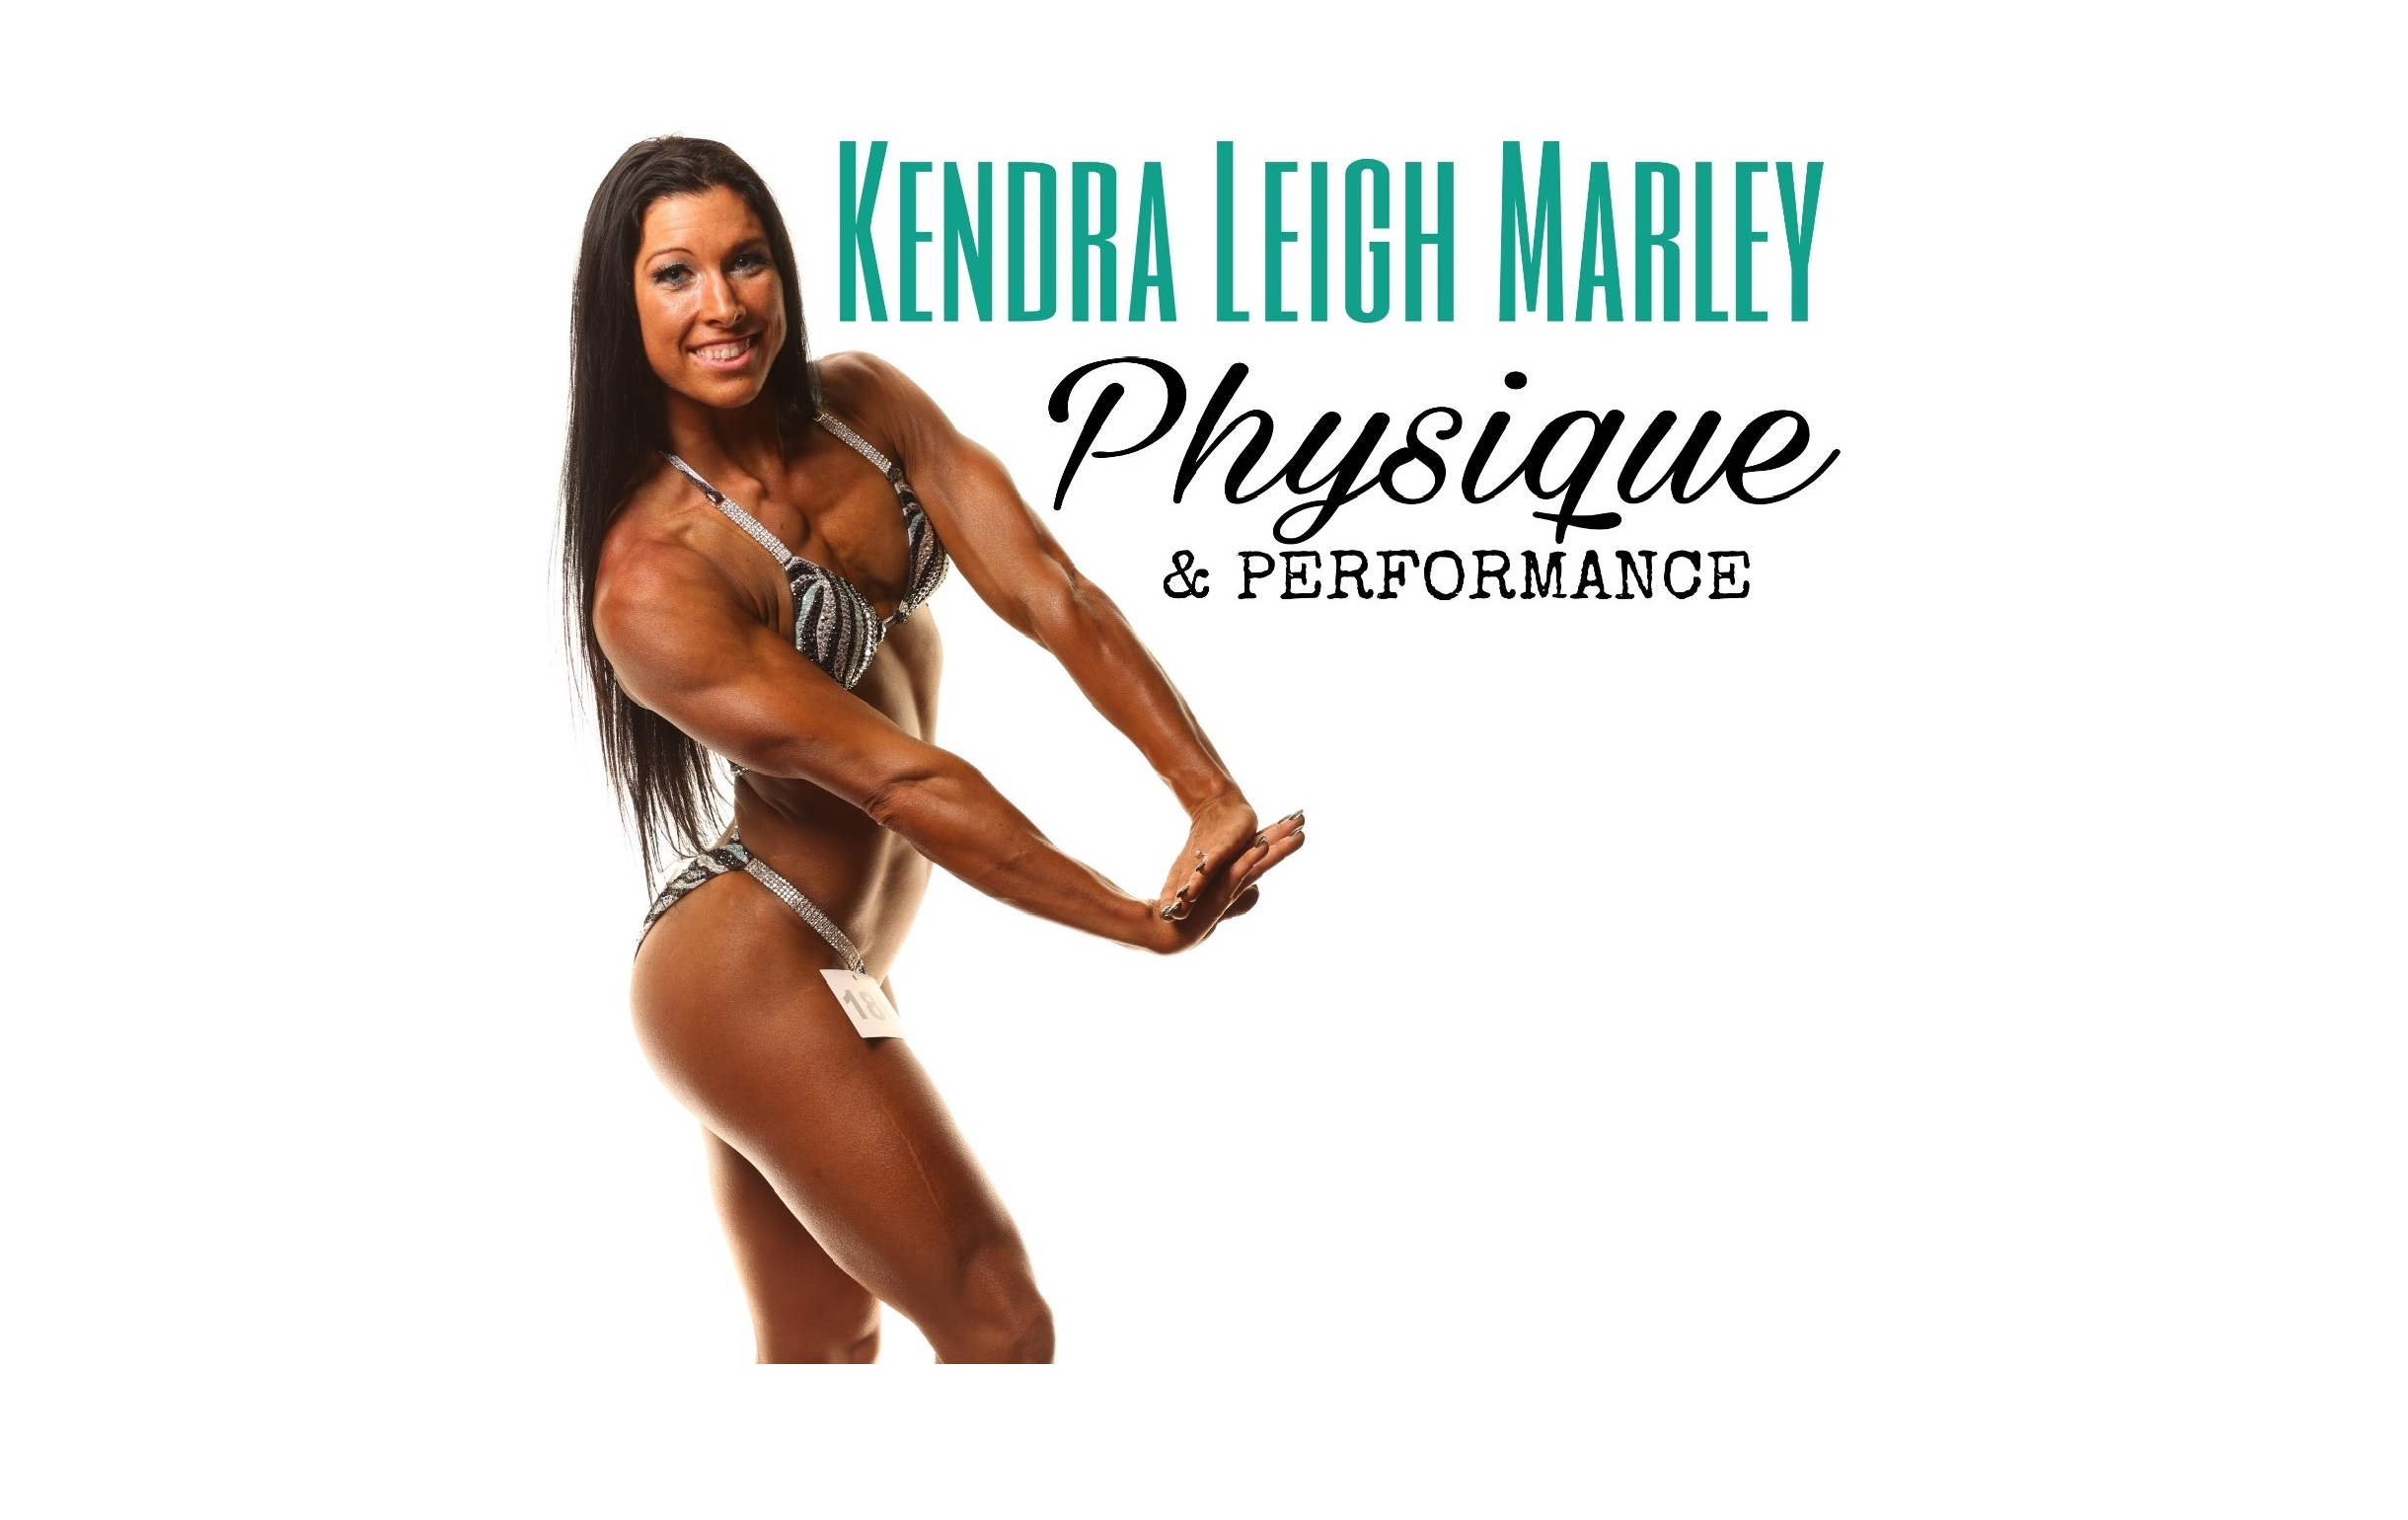 About — Kendra Leigh Marley